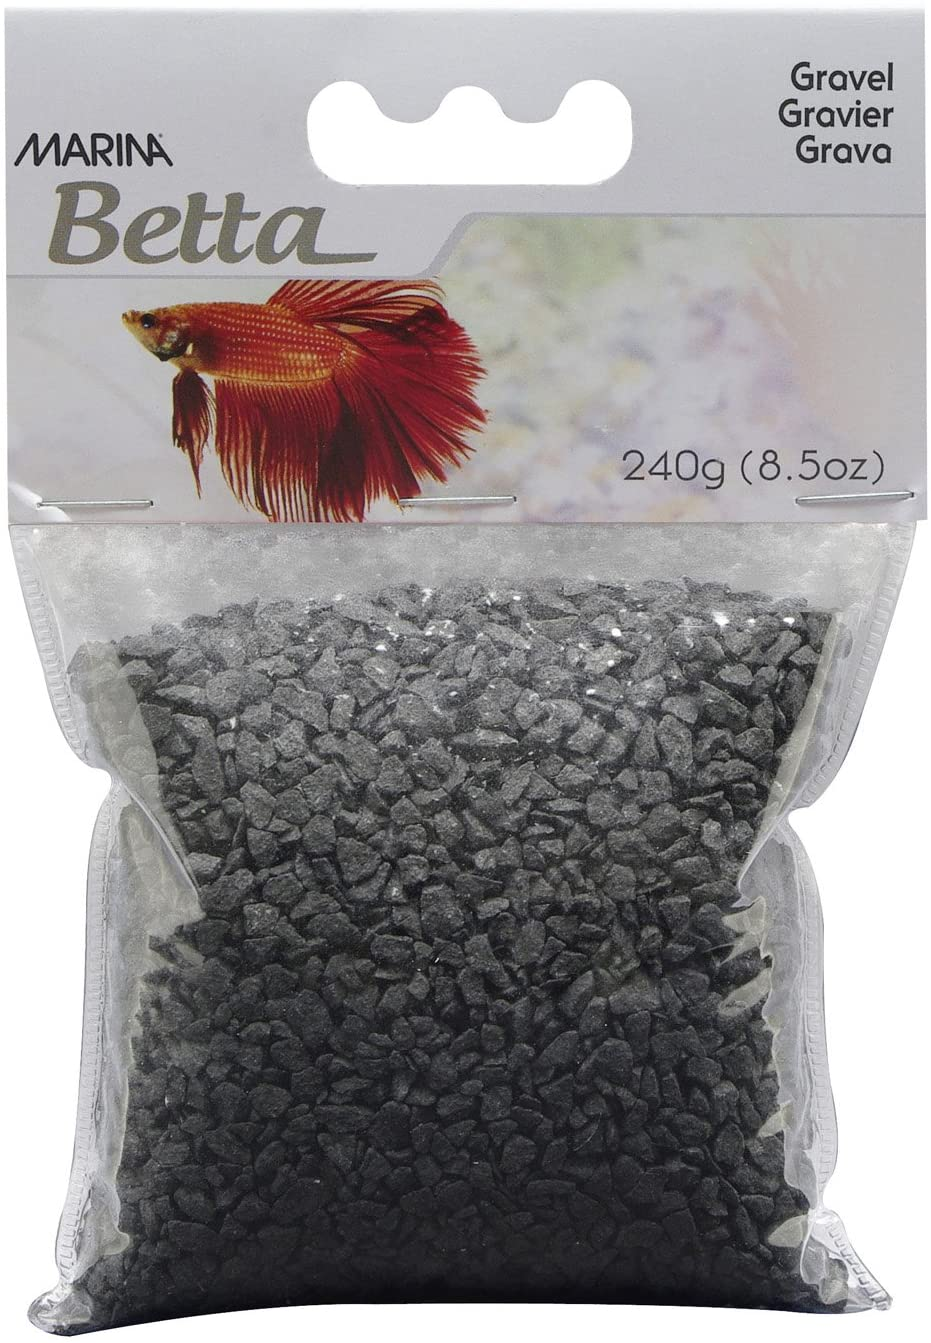 Marina Betta Gravel Aquarium Decoration, Black, 8.5-oz